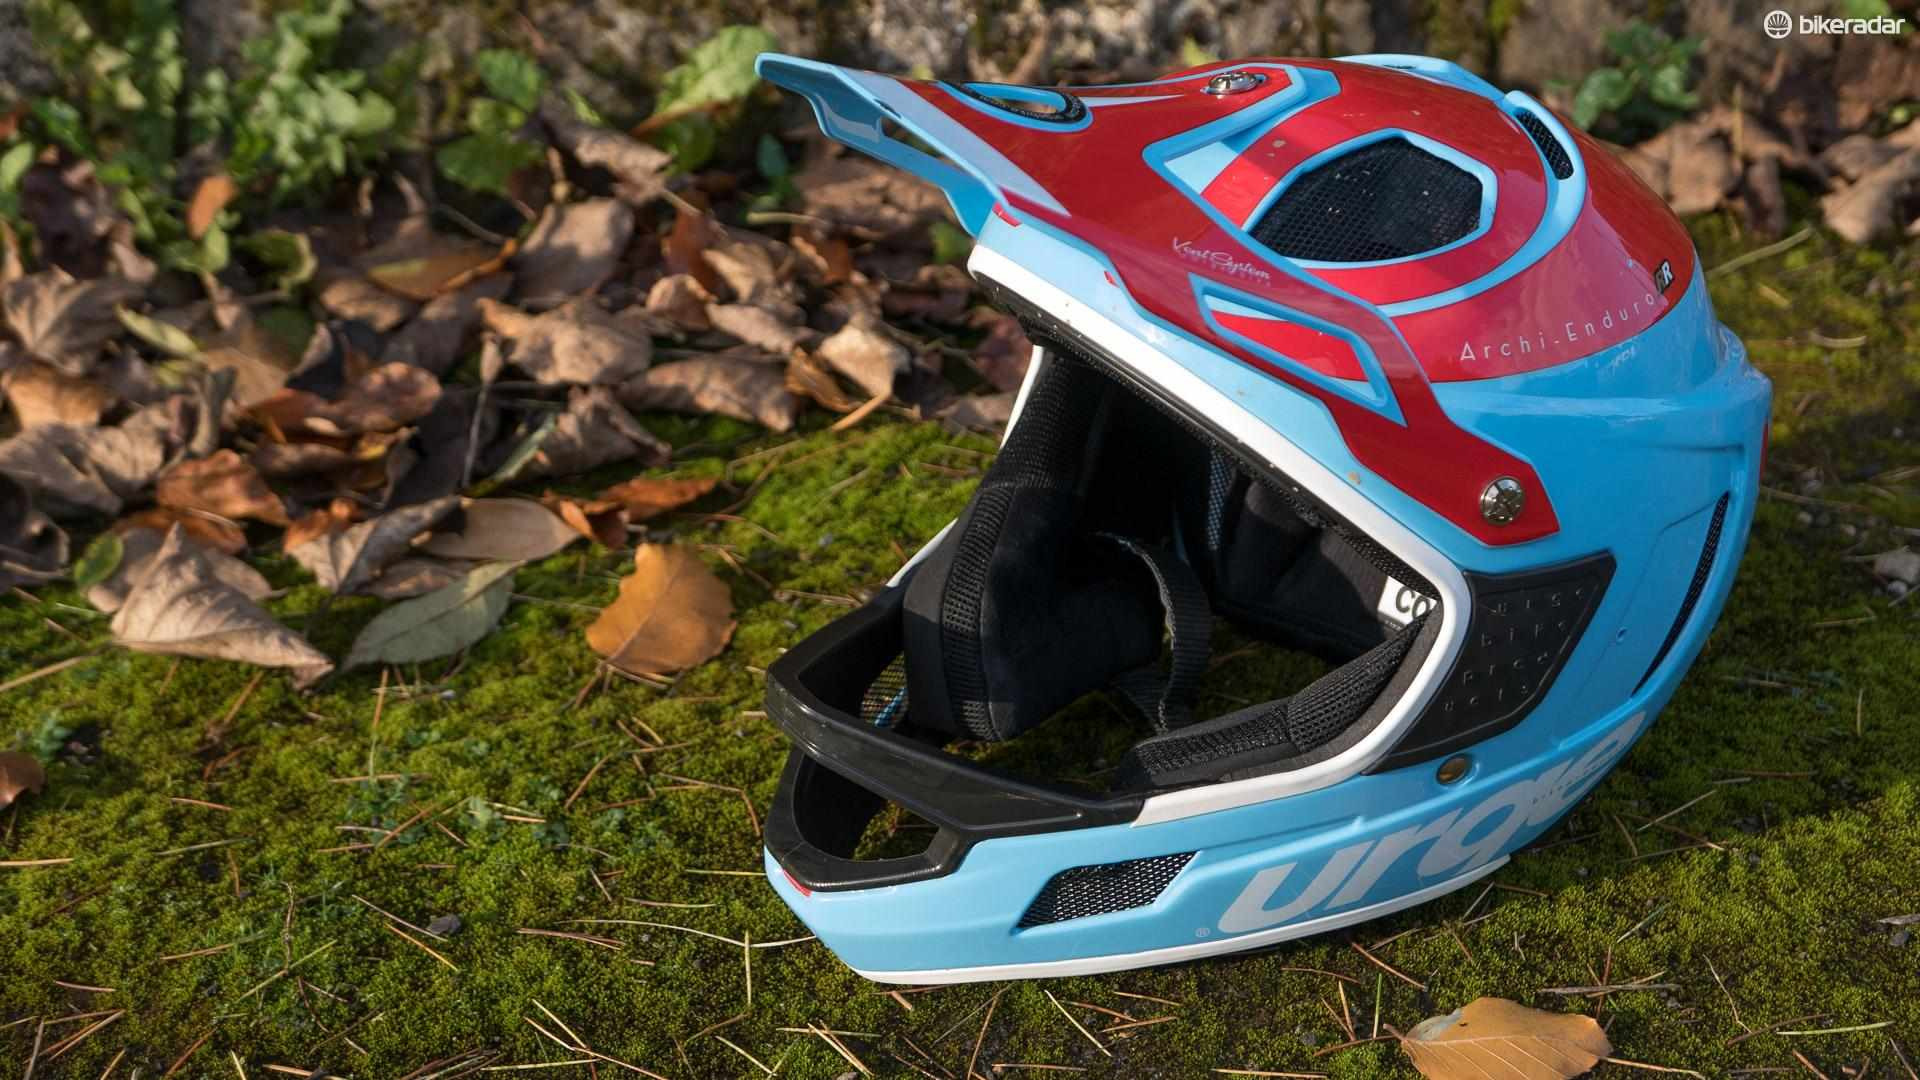 The Urge Archi-Enduro RR